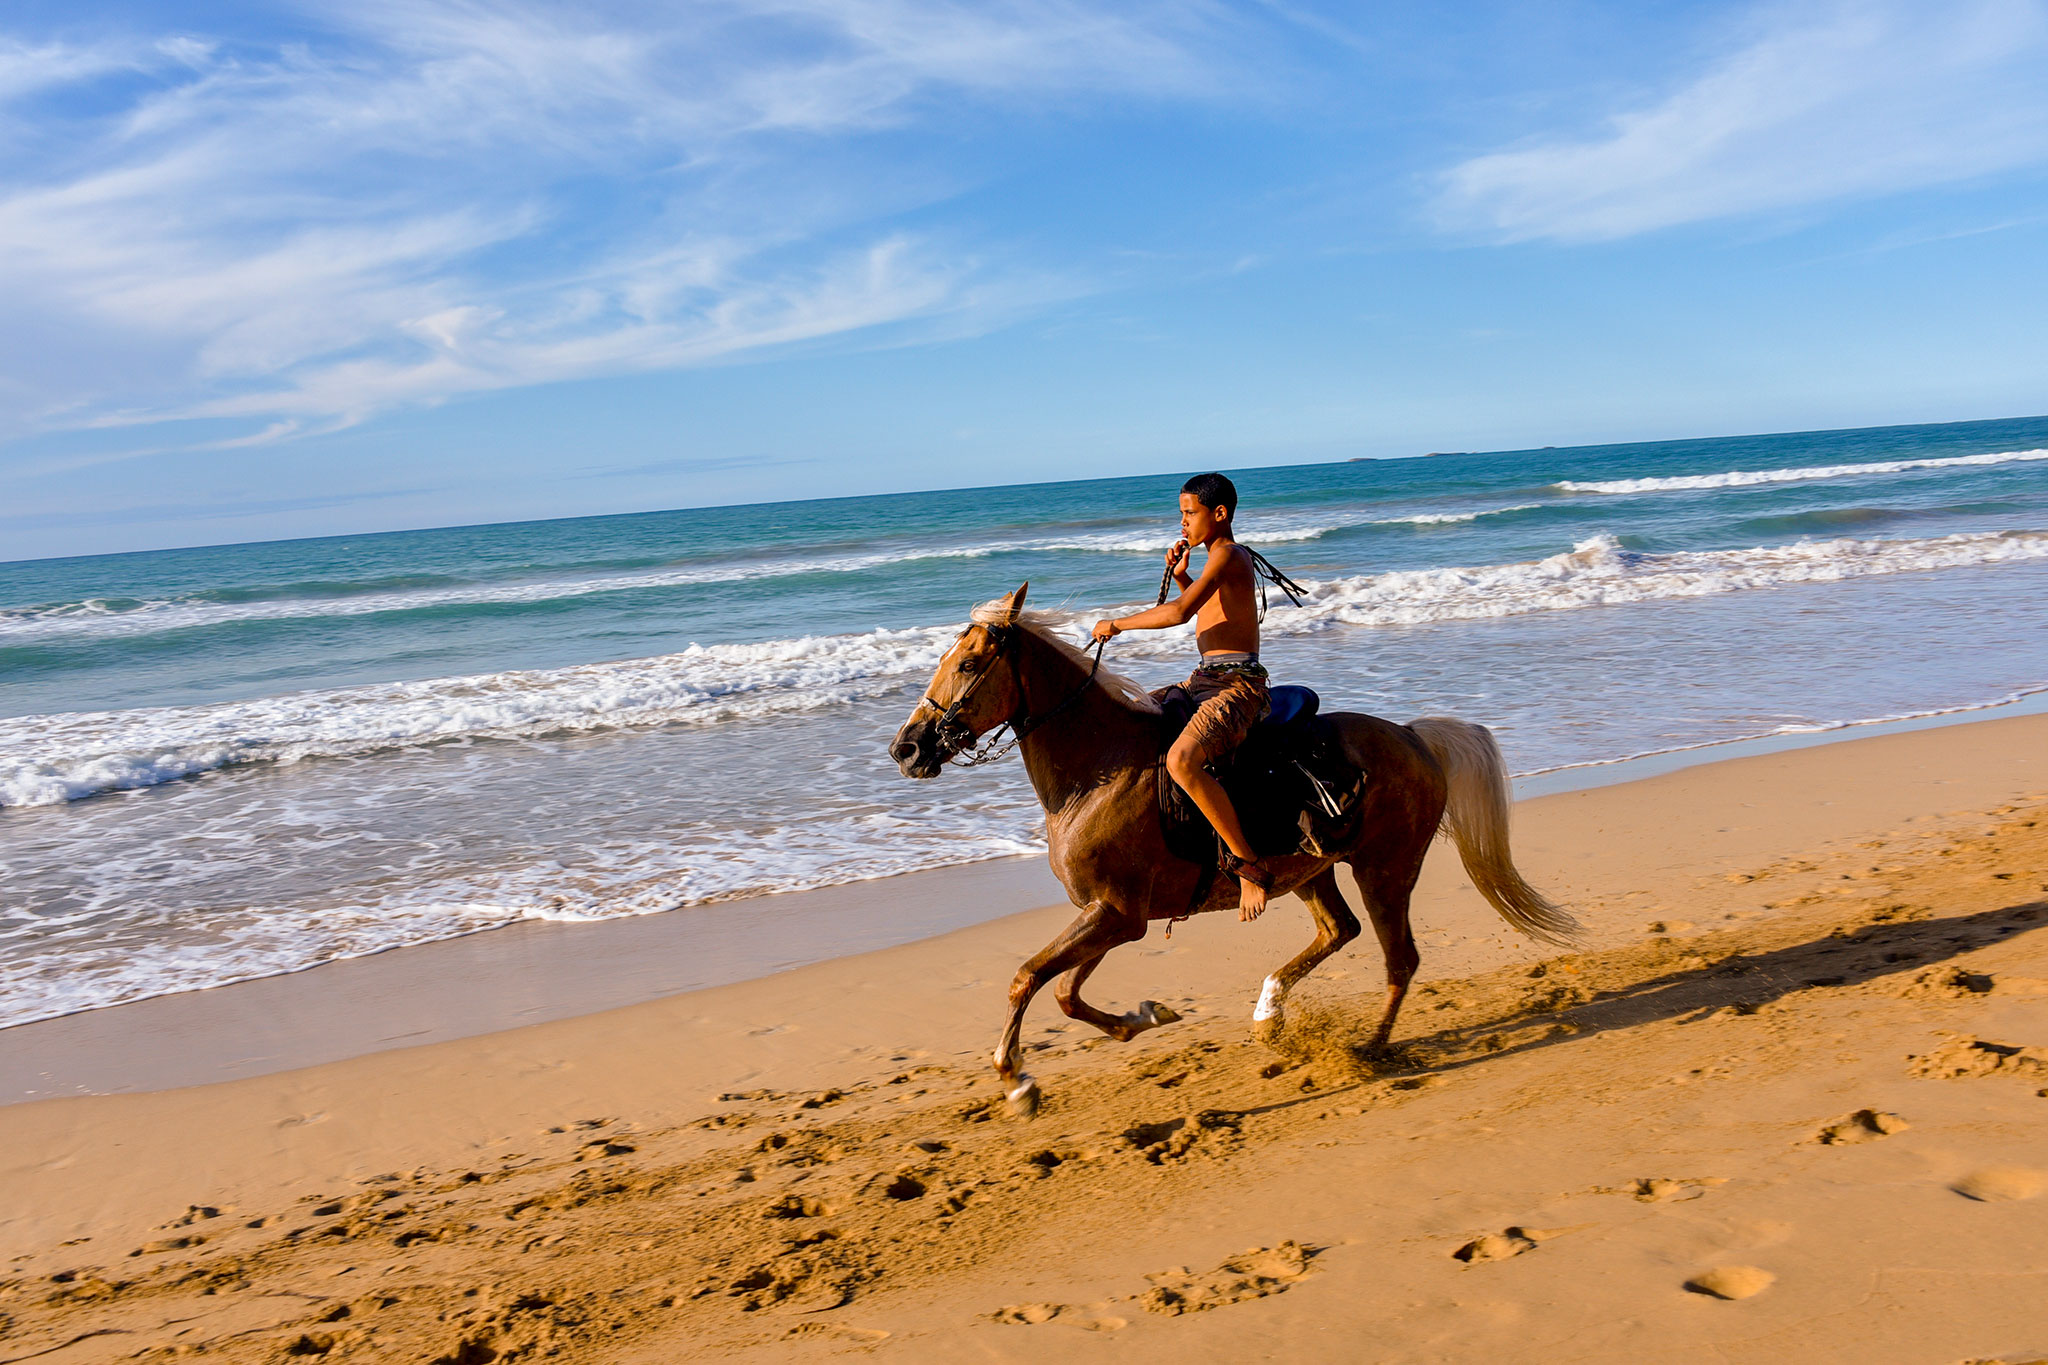 horseback riding - Enjoy riding around secluded beaches on horseback, learn to gallop through the shallow caribbean sea, pictures & video included $90 per person